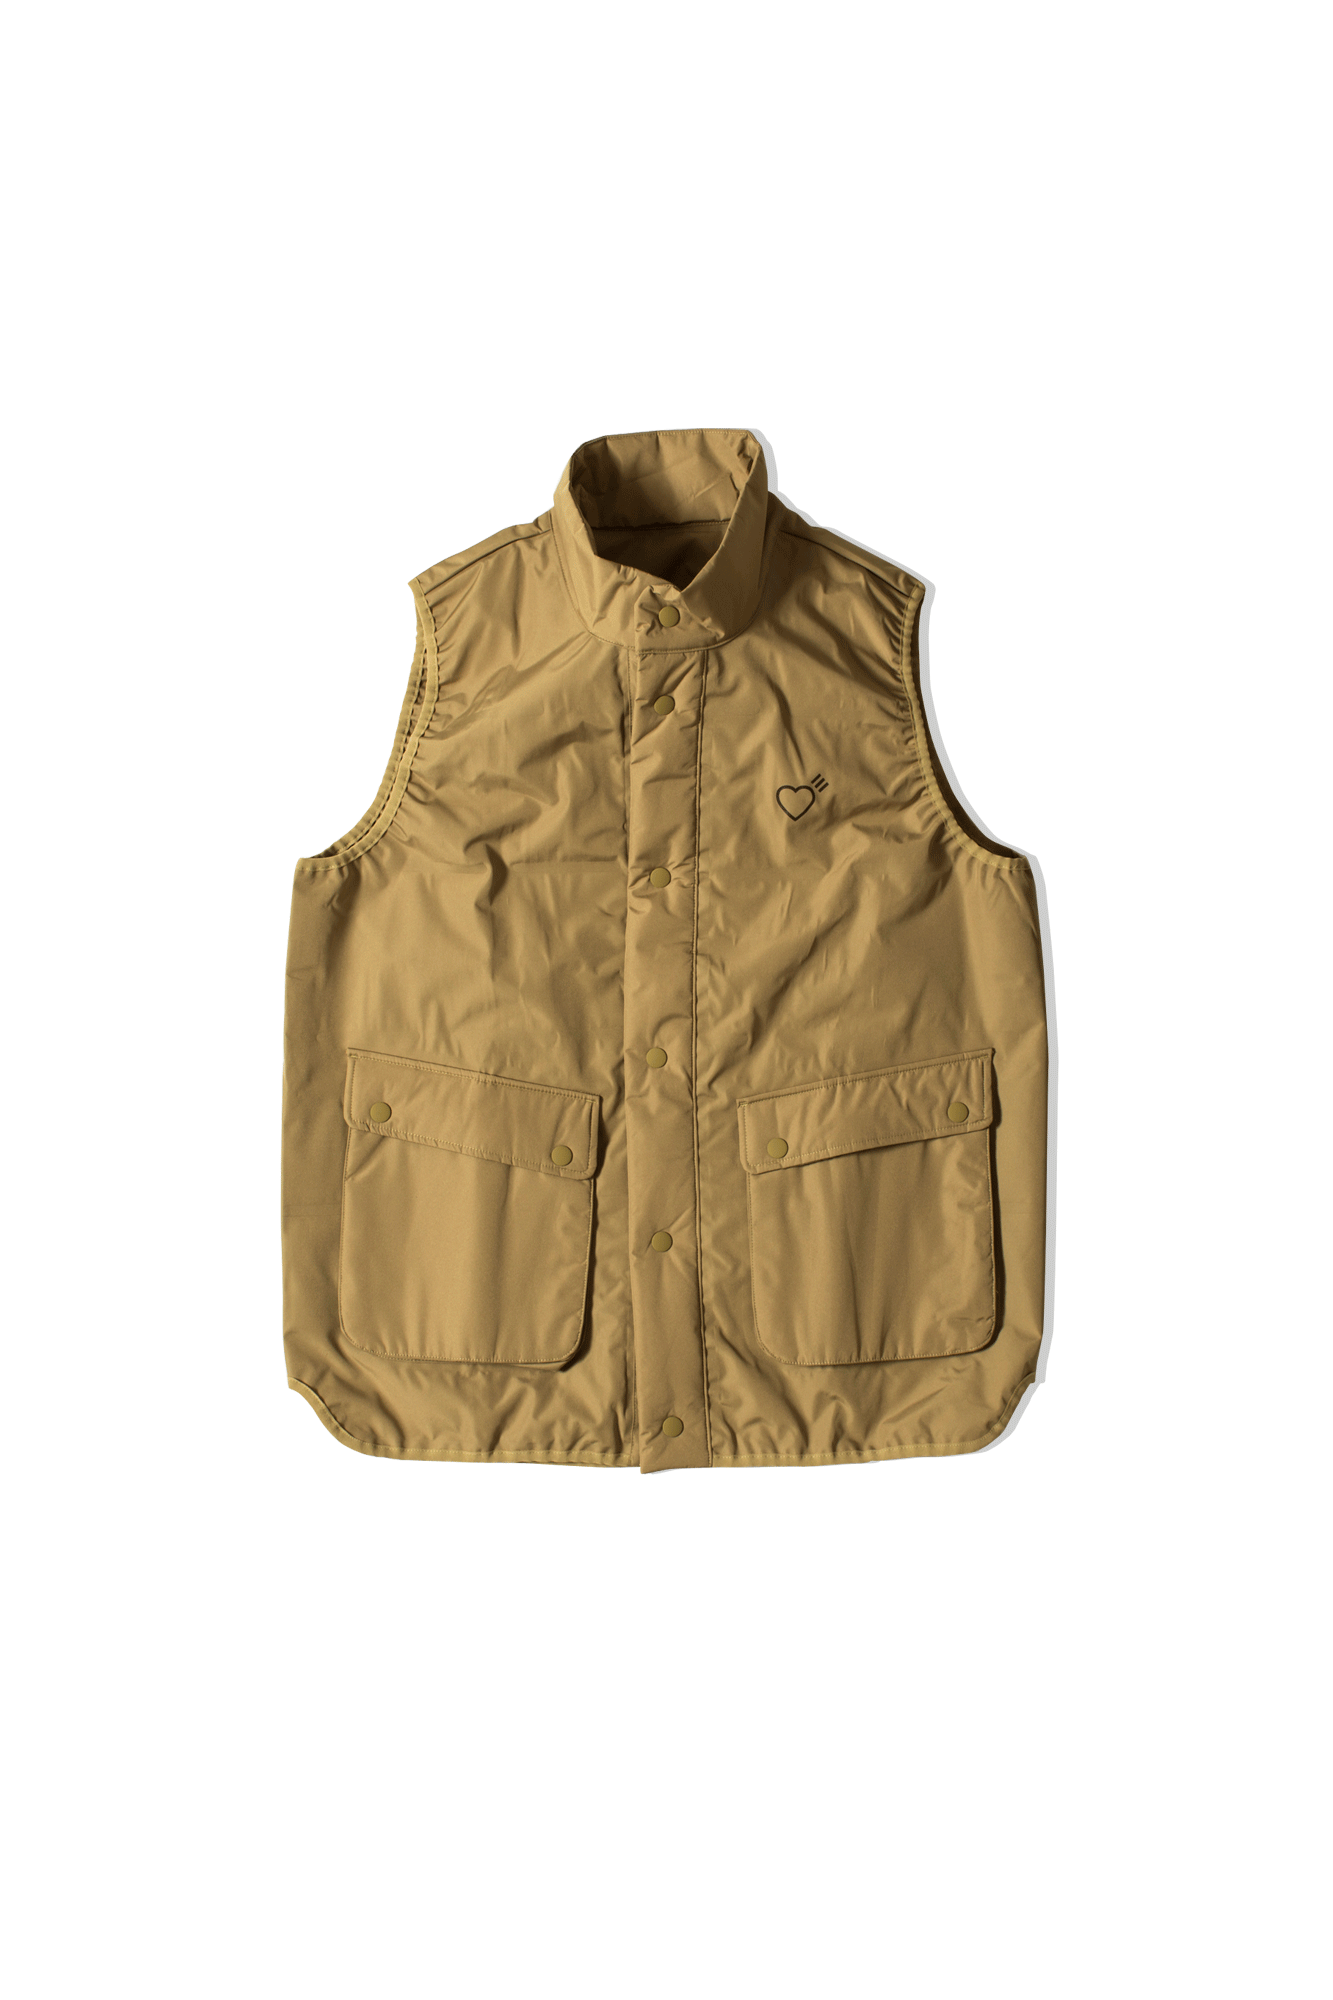 INFL Vest Human Made Green